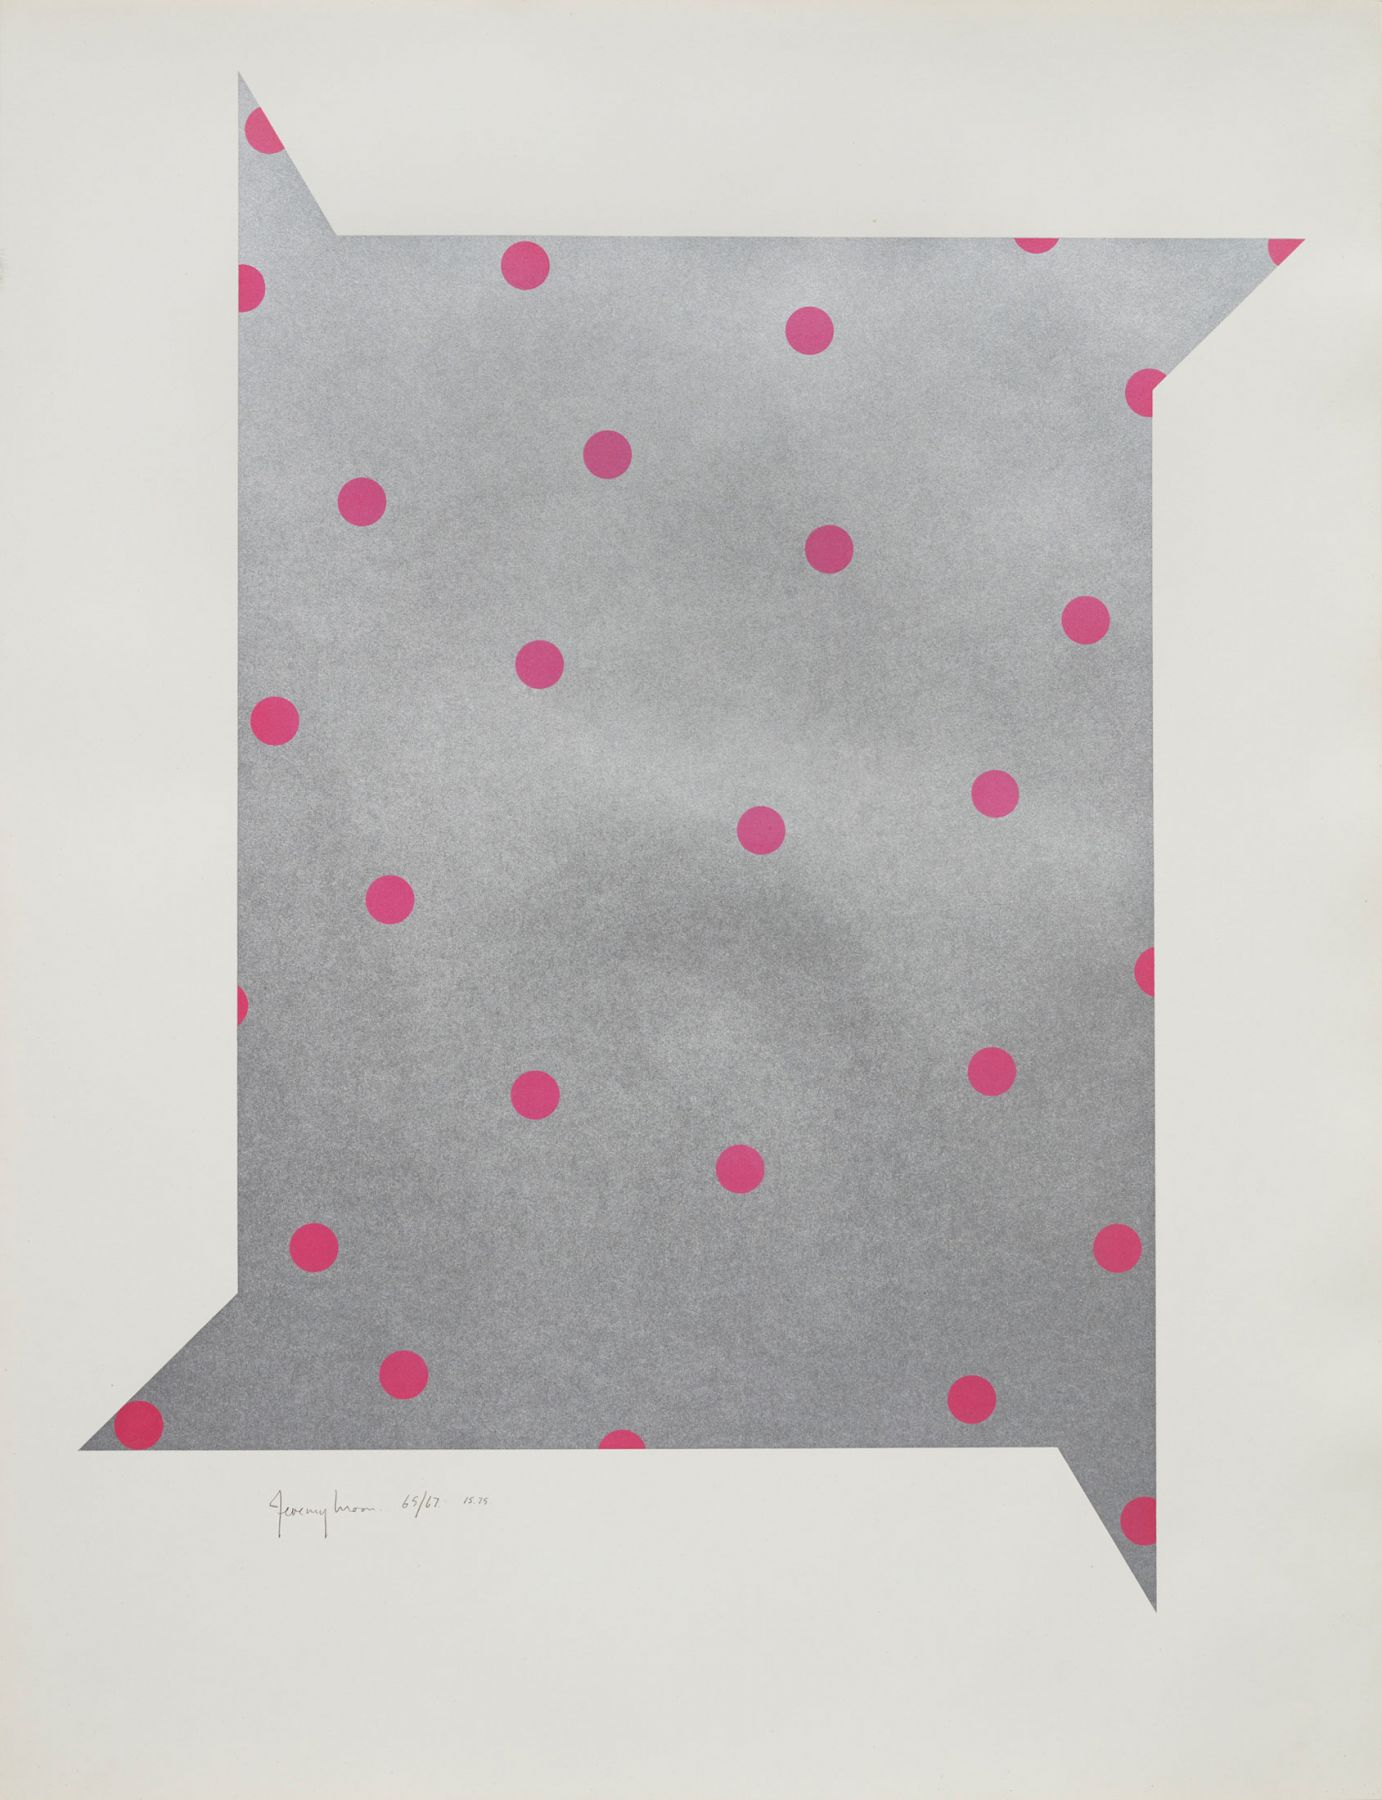 Jeremy Moon, Starlight Hour, 1965-67,  Screenprint on paper, Edition of 75